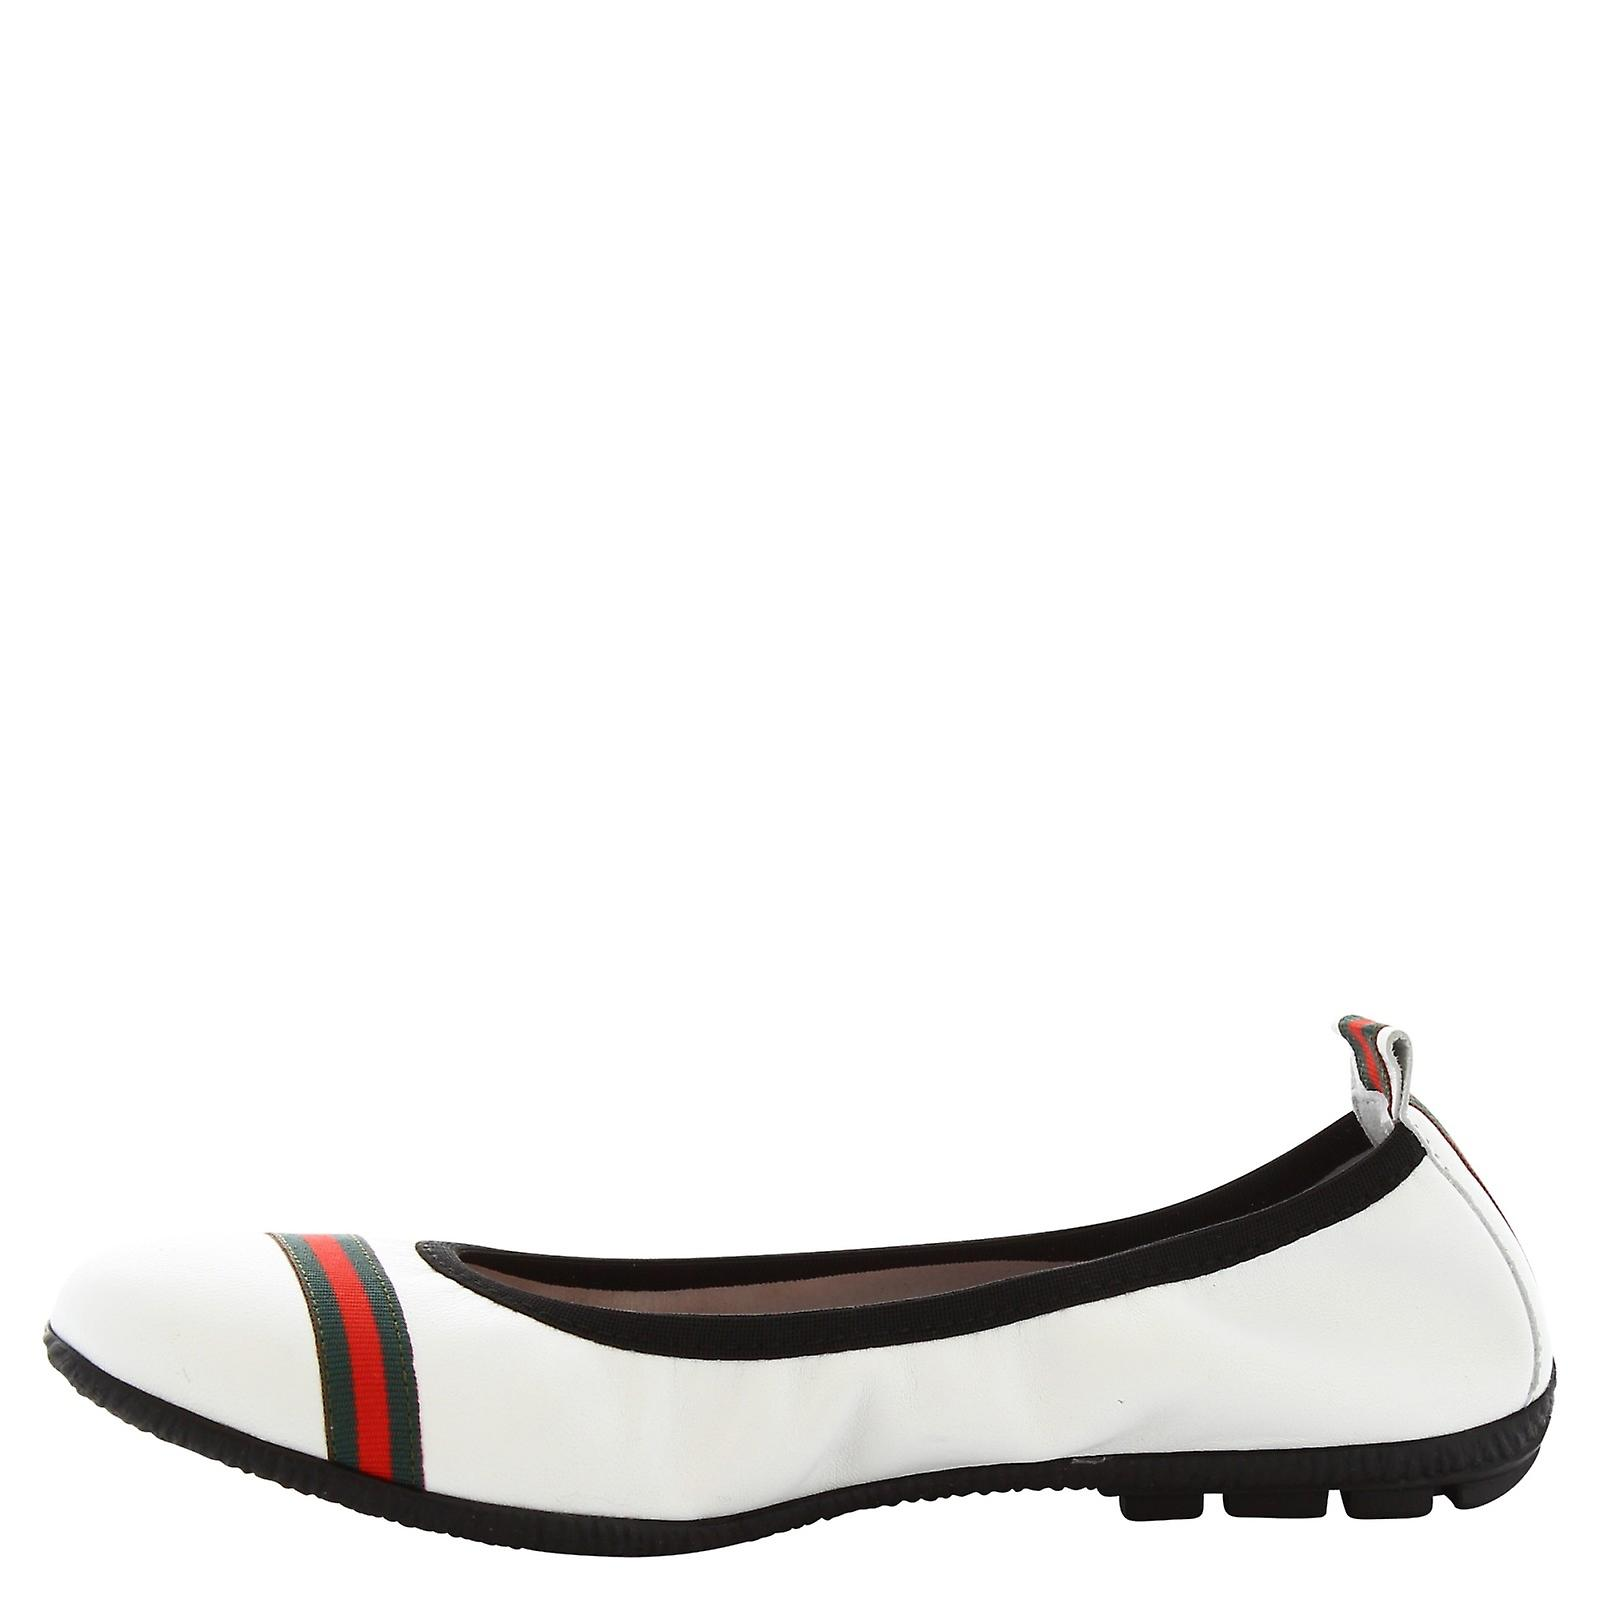 Leonardo Shoes Woman's handmade ballerinas in white leather with red band